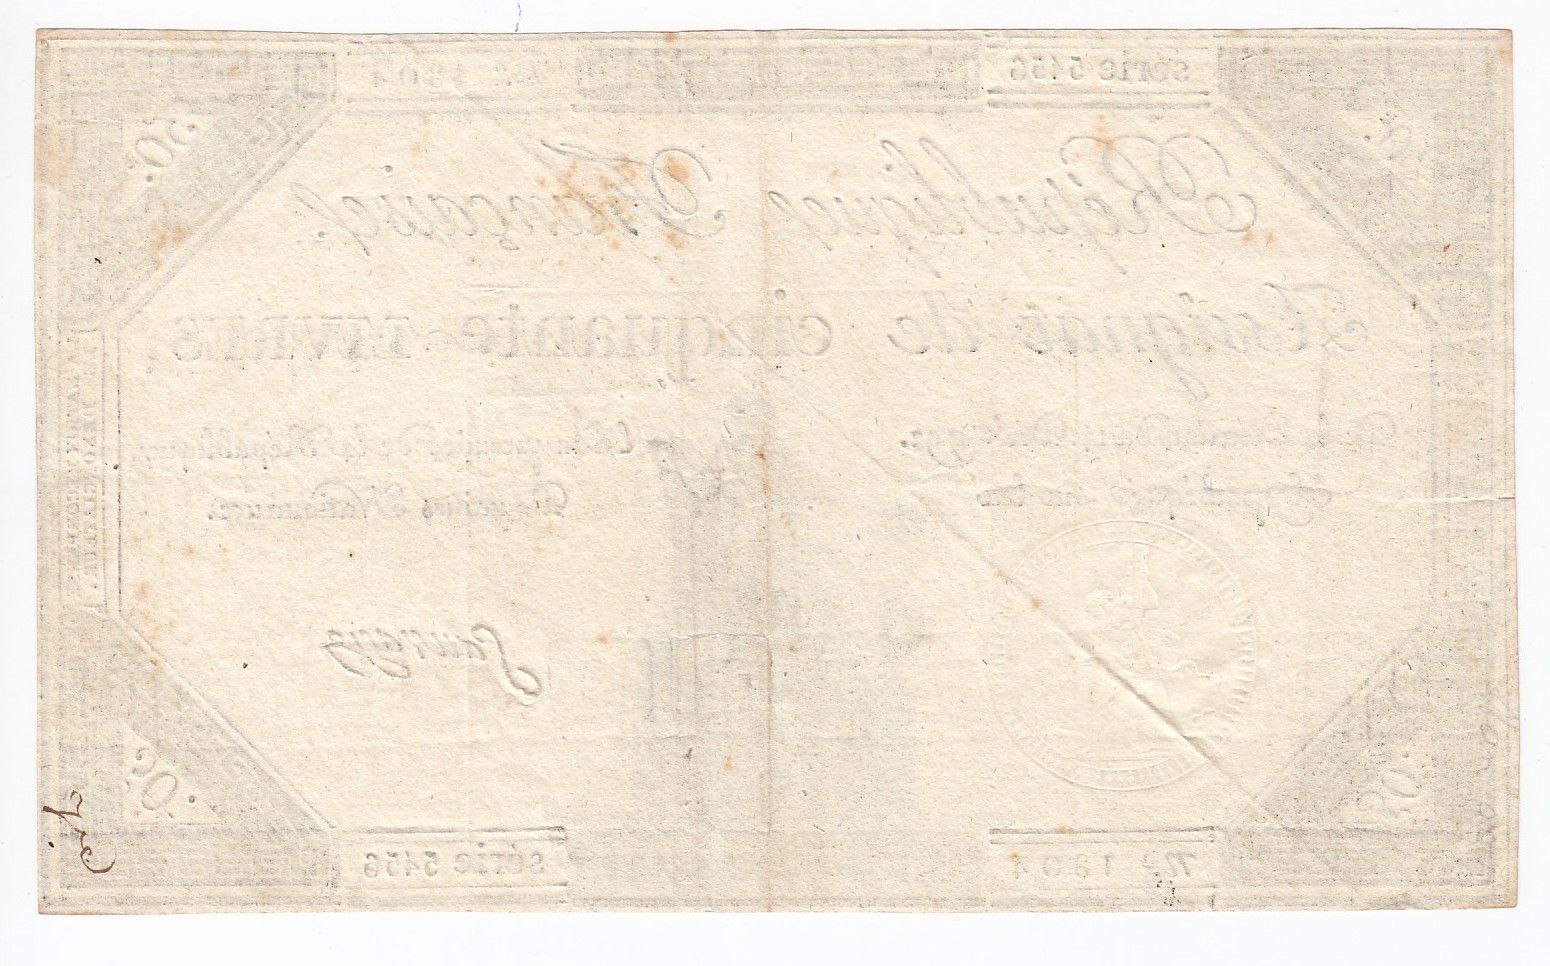 France 50 Livres France assise - 14-12-1792 - Sign. Sauvage - SUP